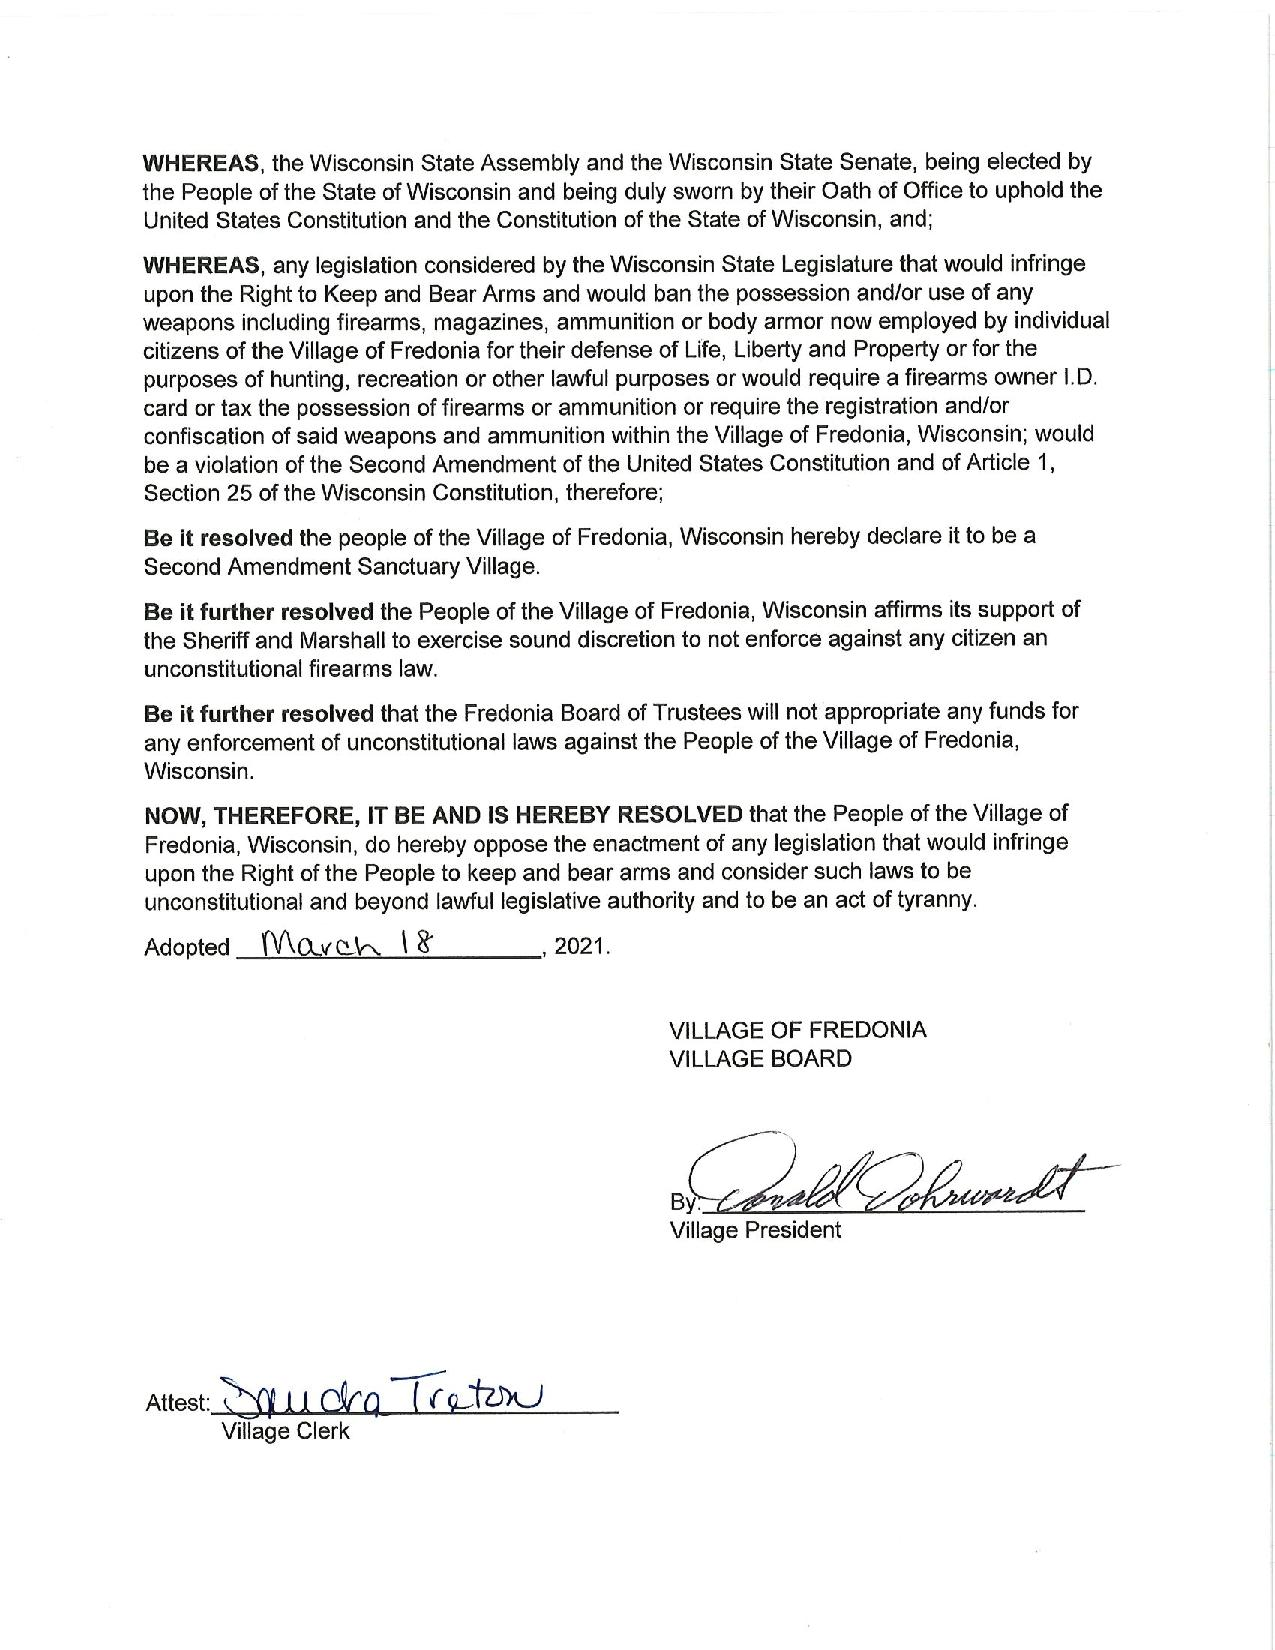 Village of Fredonia Resolution Page 2